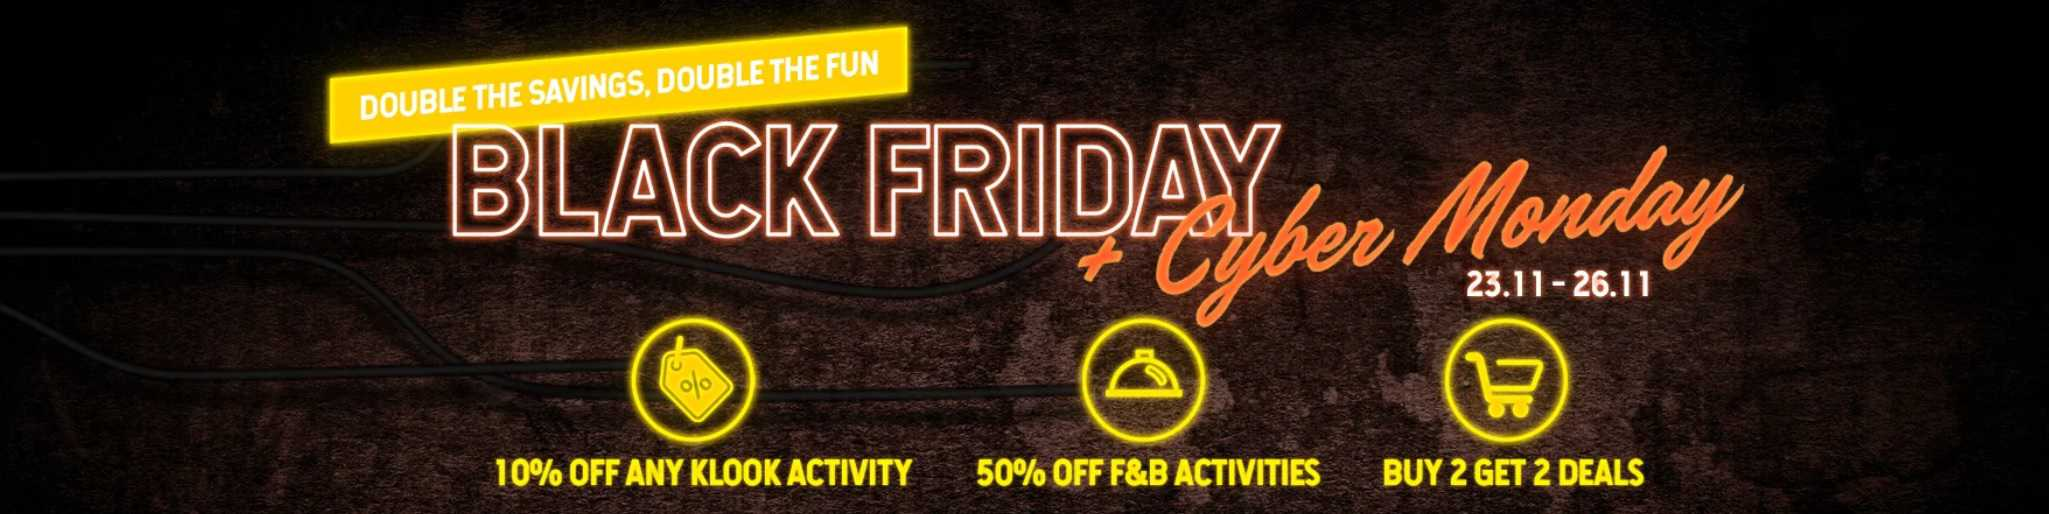 Klook Black Friday Cyber Monday 2-for-2